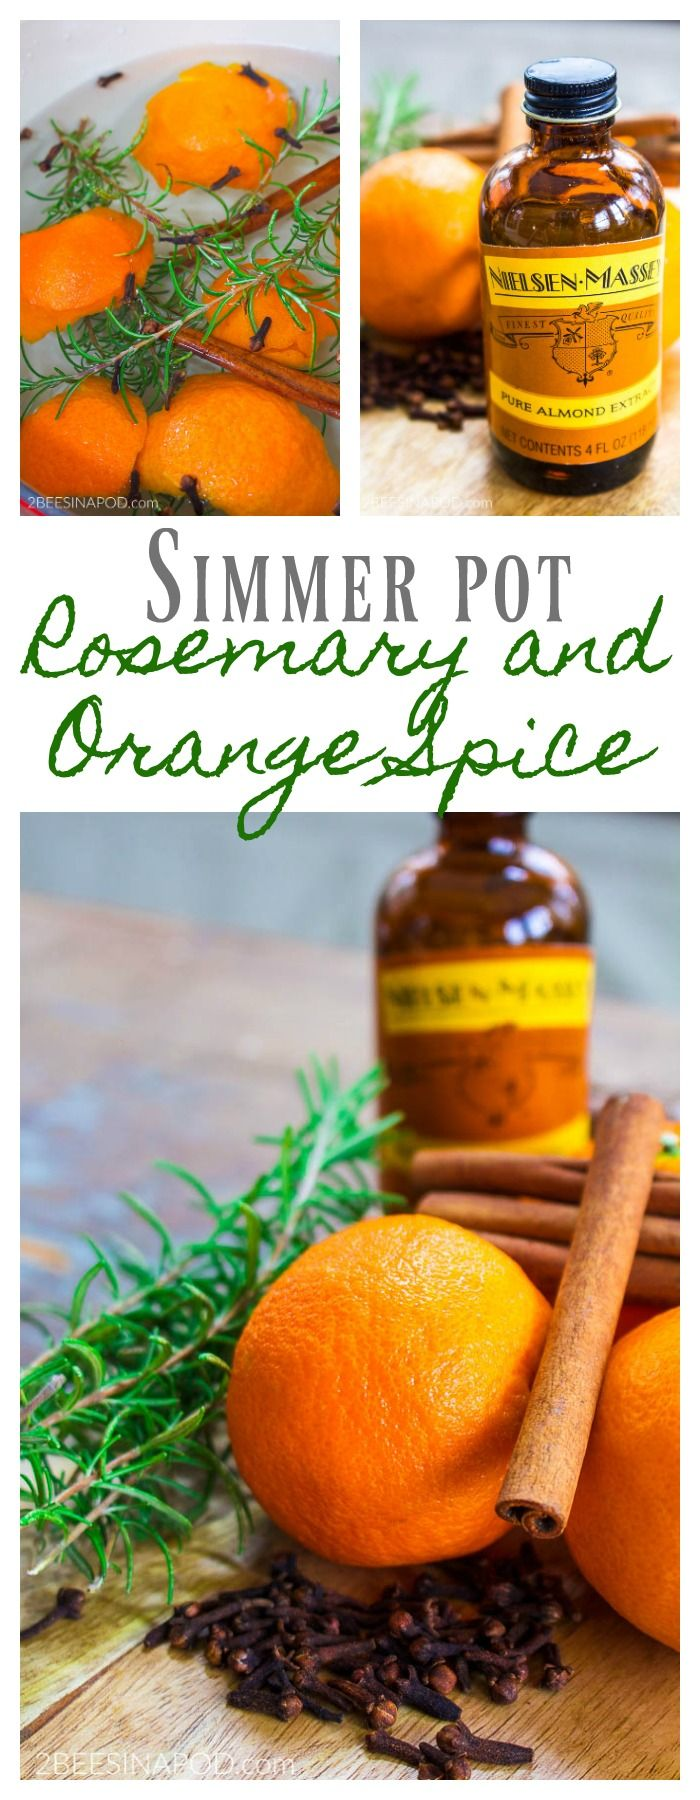 best ideas for the home images on pinterest doterra essential